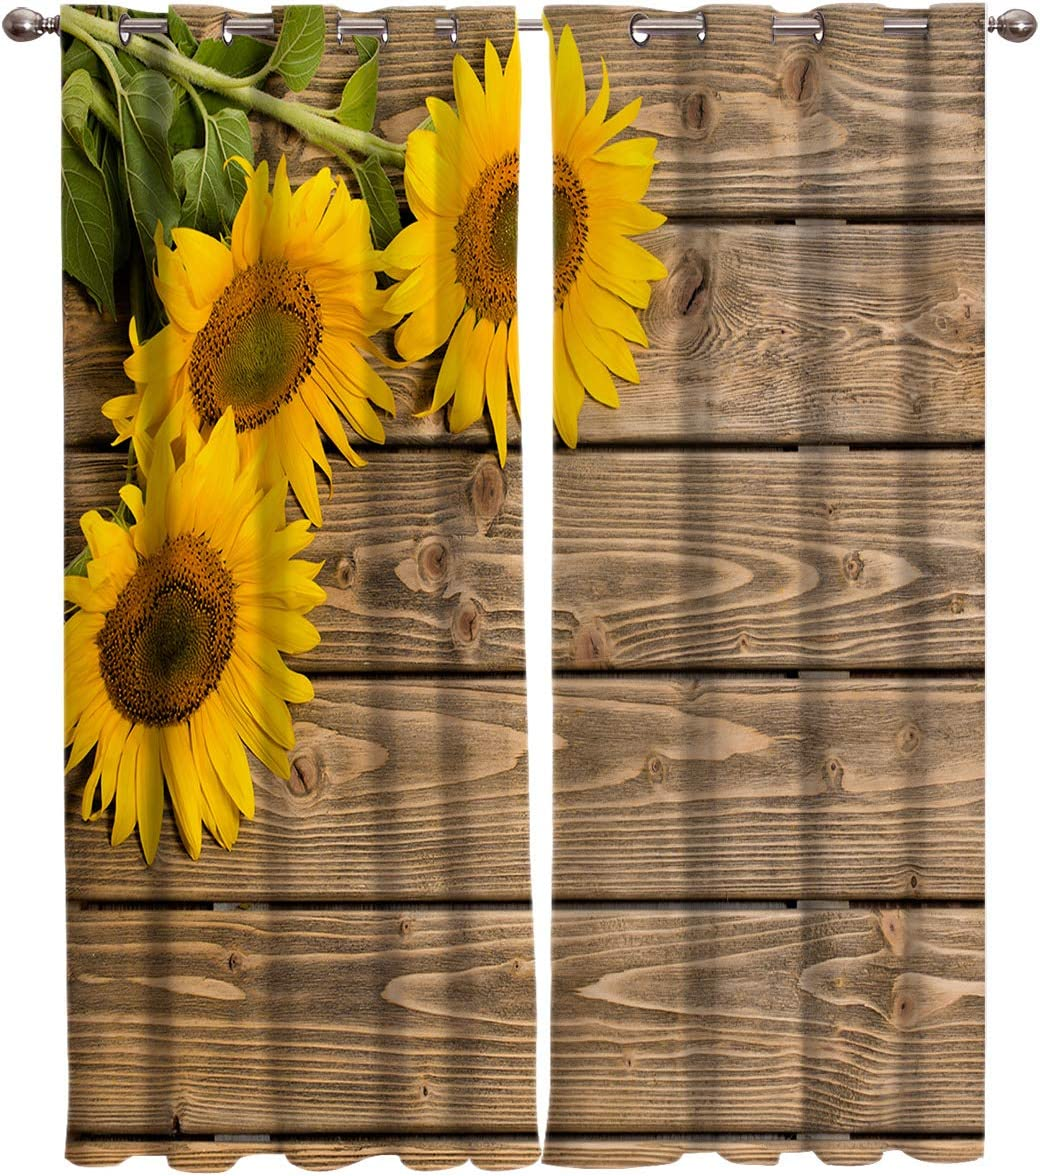 T H Home Draperies Curtains Set, Custom Sunflowers on Rustic Old Barn Wood Print Window Curtain, 2 Panels Curtain for Sliding Glass Door Bedroom Living Room, 54 W by 39 L